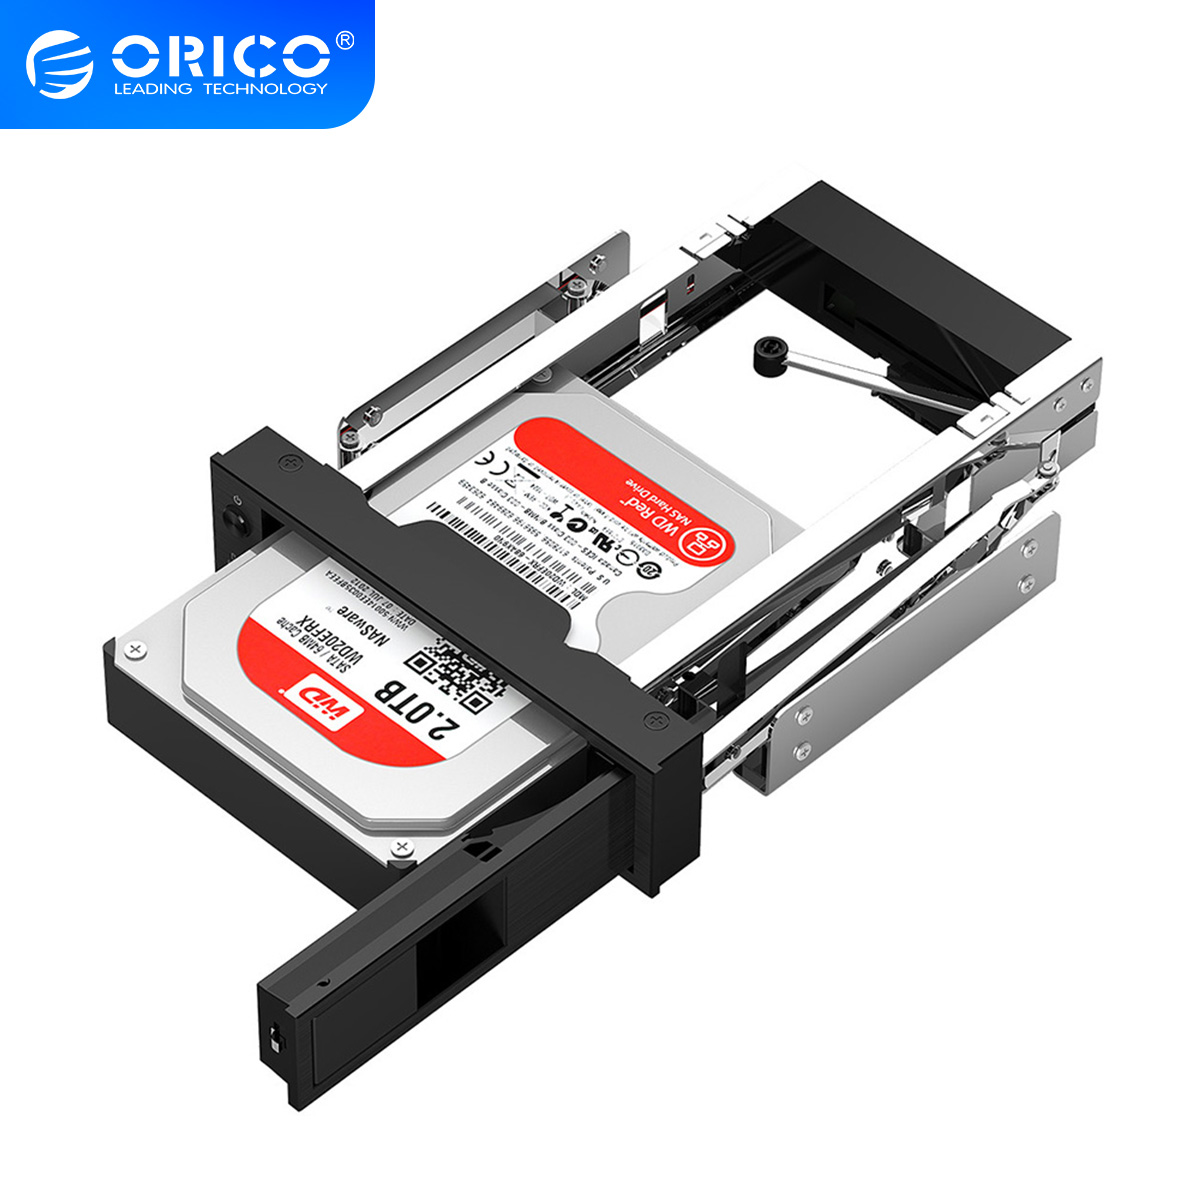 ORICO Hard Drive Caddy 3 5 inch 5 25 Bay Stainless Internal Hard Drive Mounting Bracket Adapter 3 5 inch SATA HDD Mobile Frame